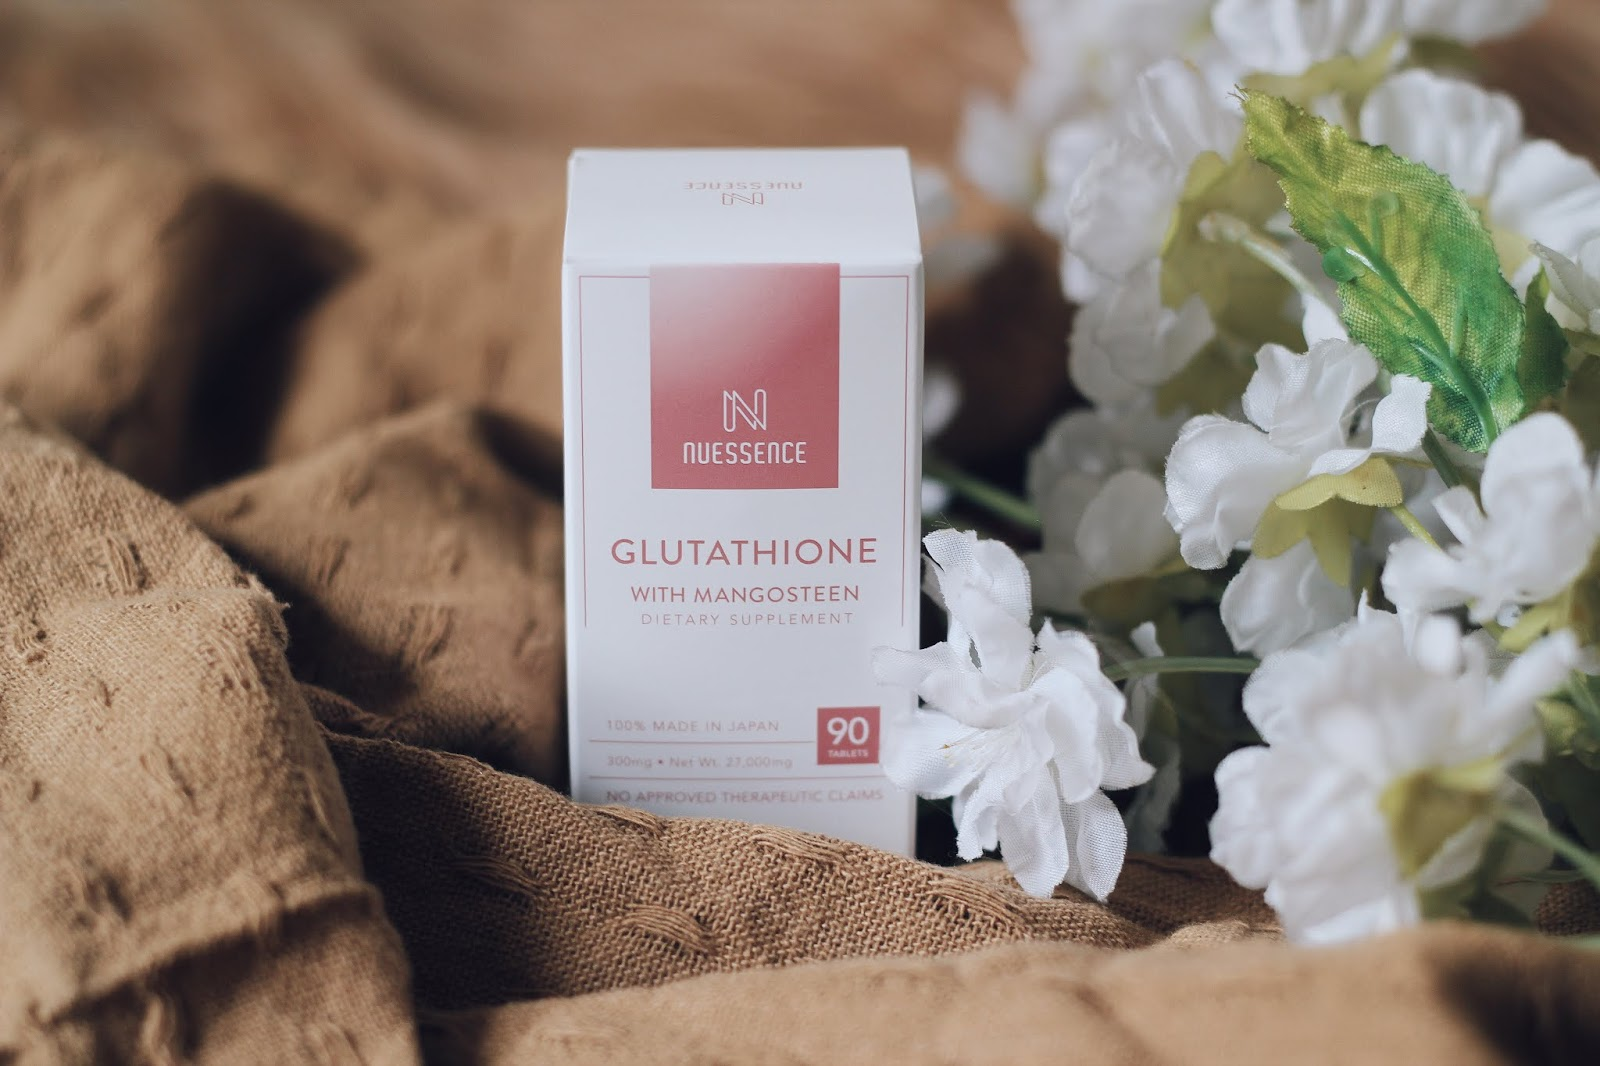 Nuessence Glutathione with Mangosteen Dietary Supplement